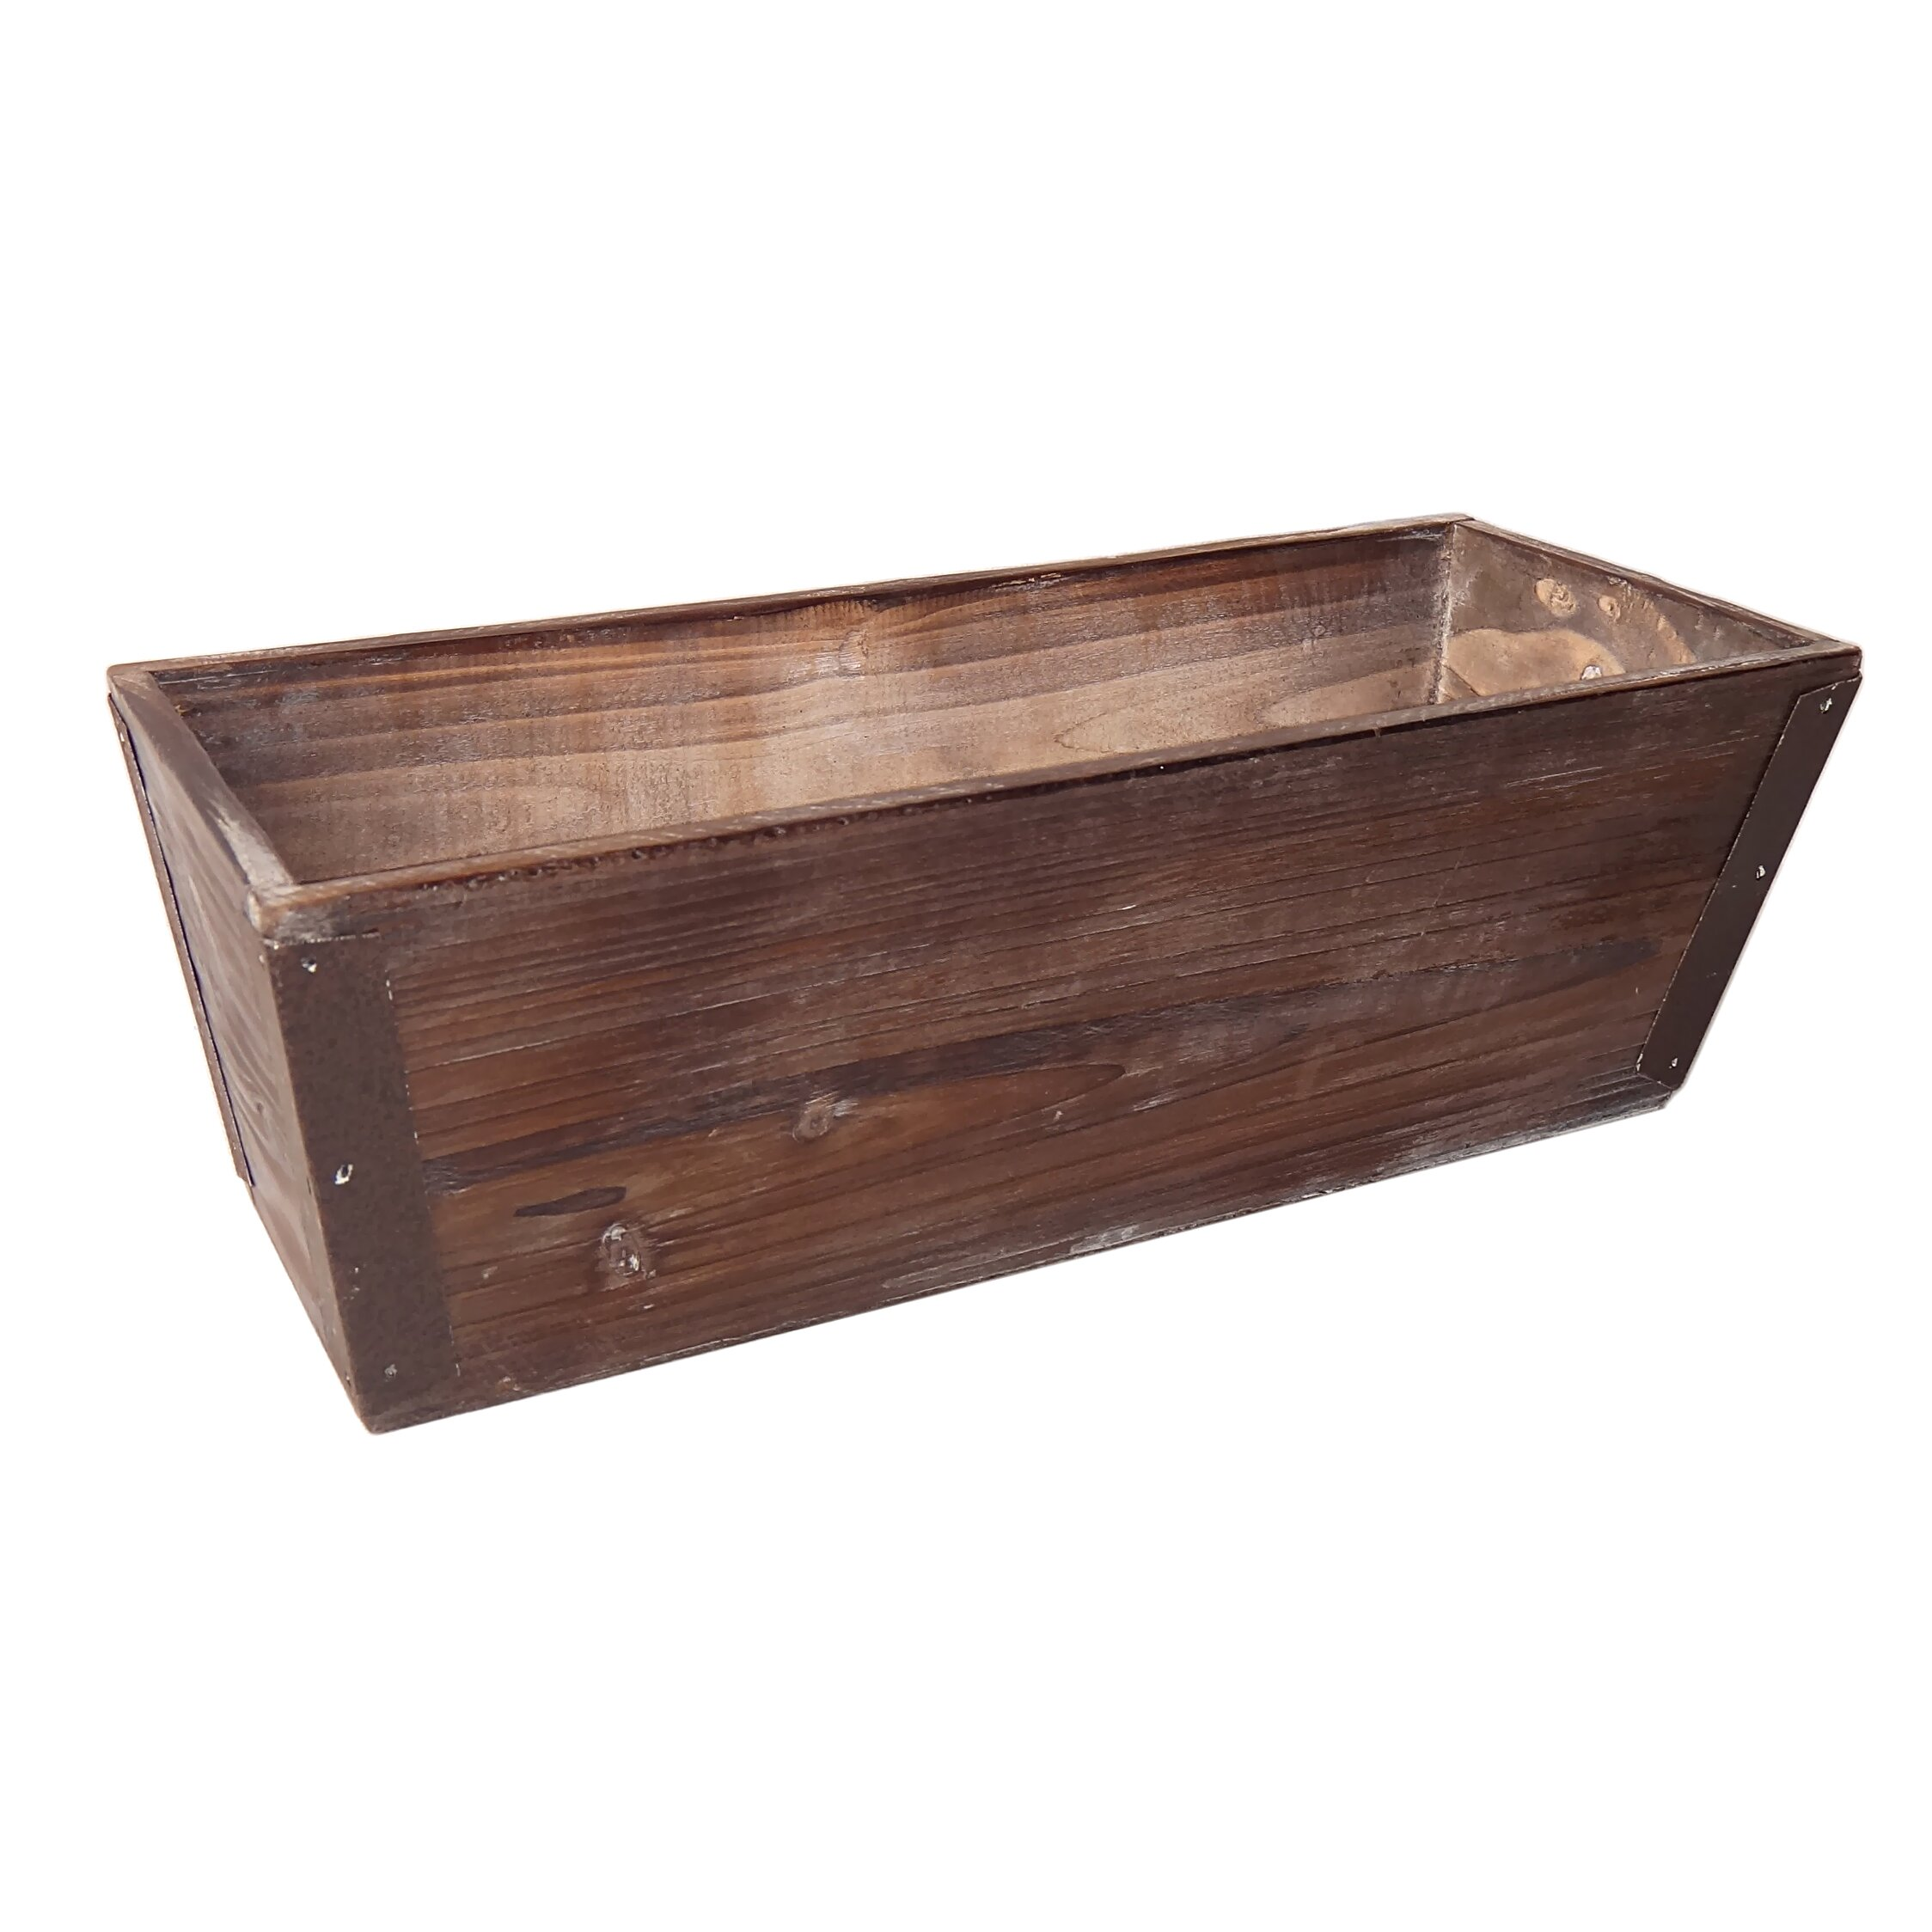 Cheungs Wooden Rectangular Planter Box amp Reviews Wayfair : Cheungs Wooden Ledge Planter from www.wayfair.com size 2248 x 2248 jpeg 418kB